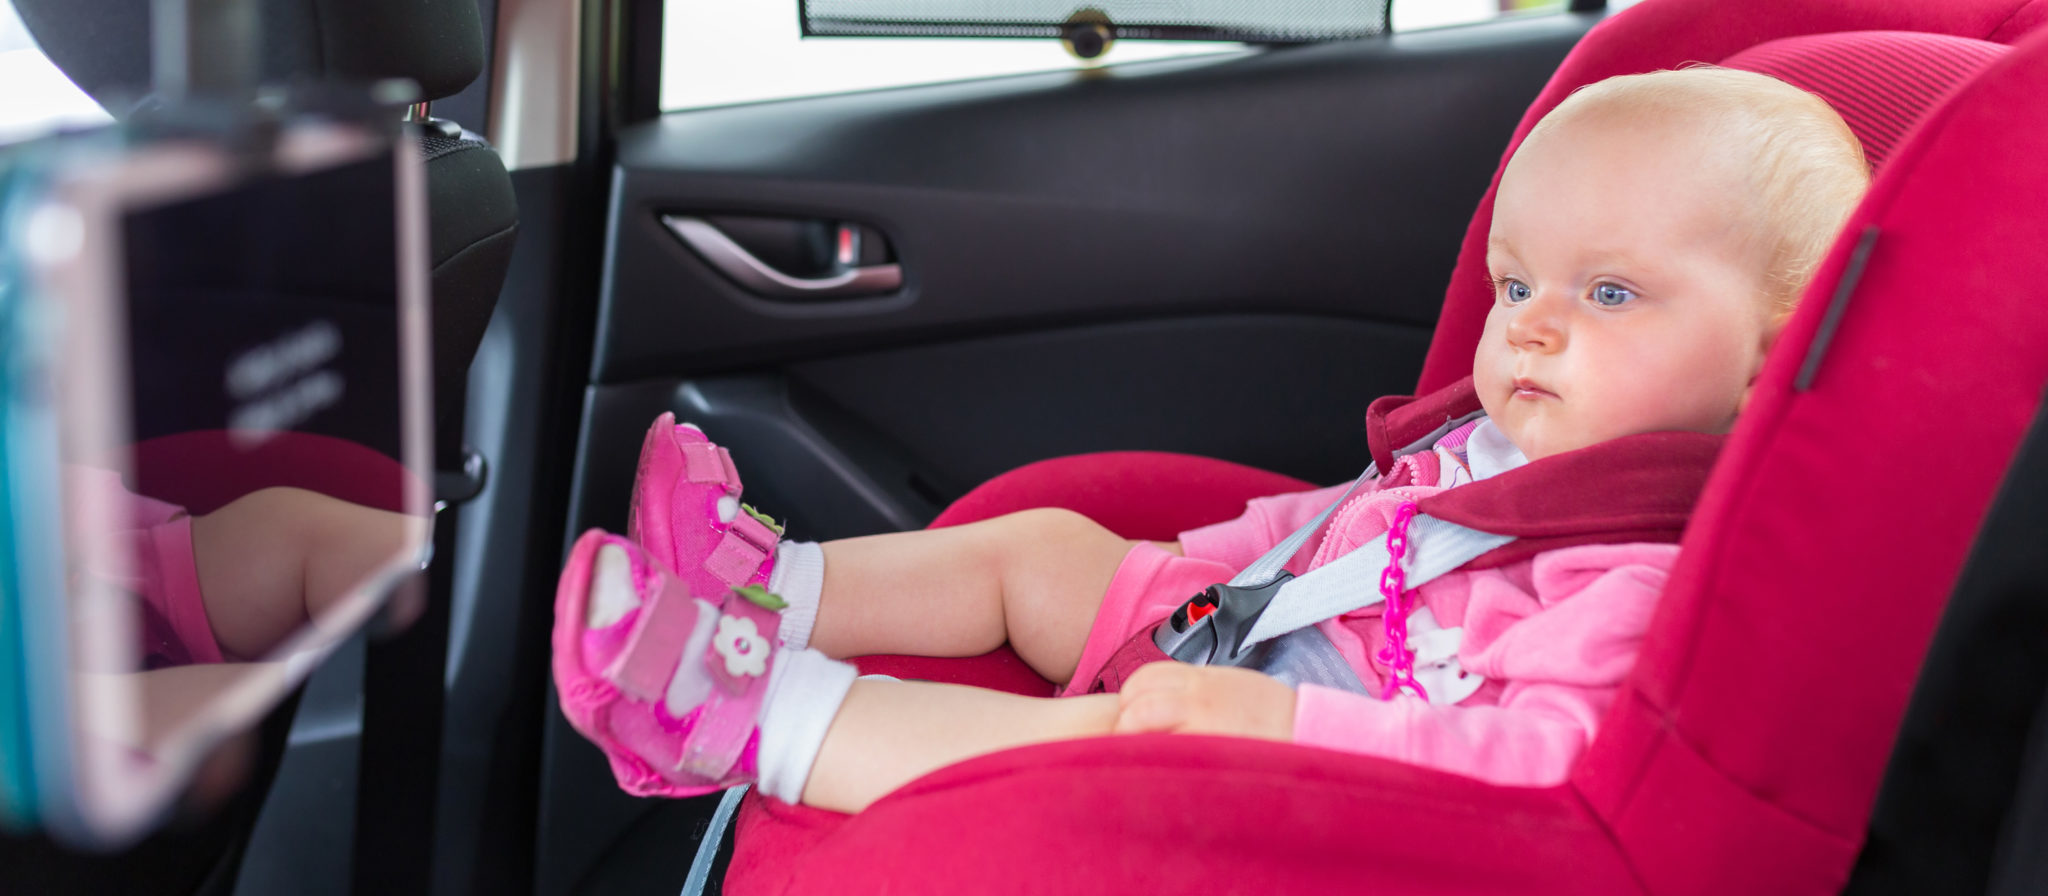 A long Disney movie is the best way to keep children occupied all throughout the car ride.